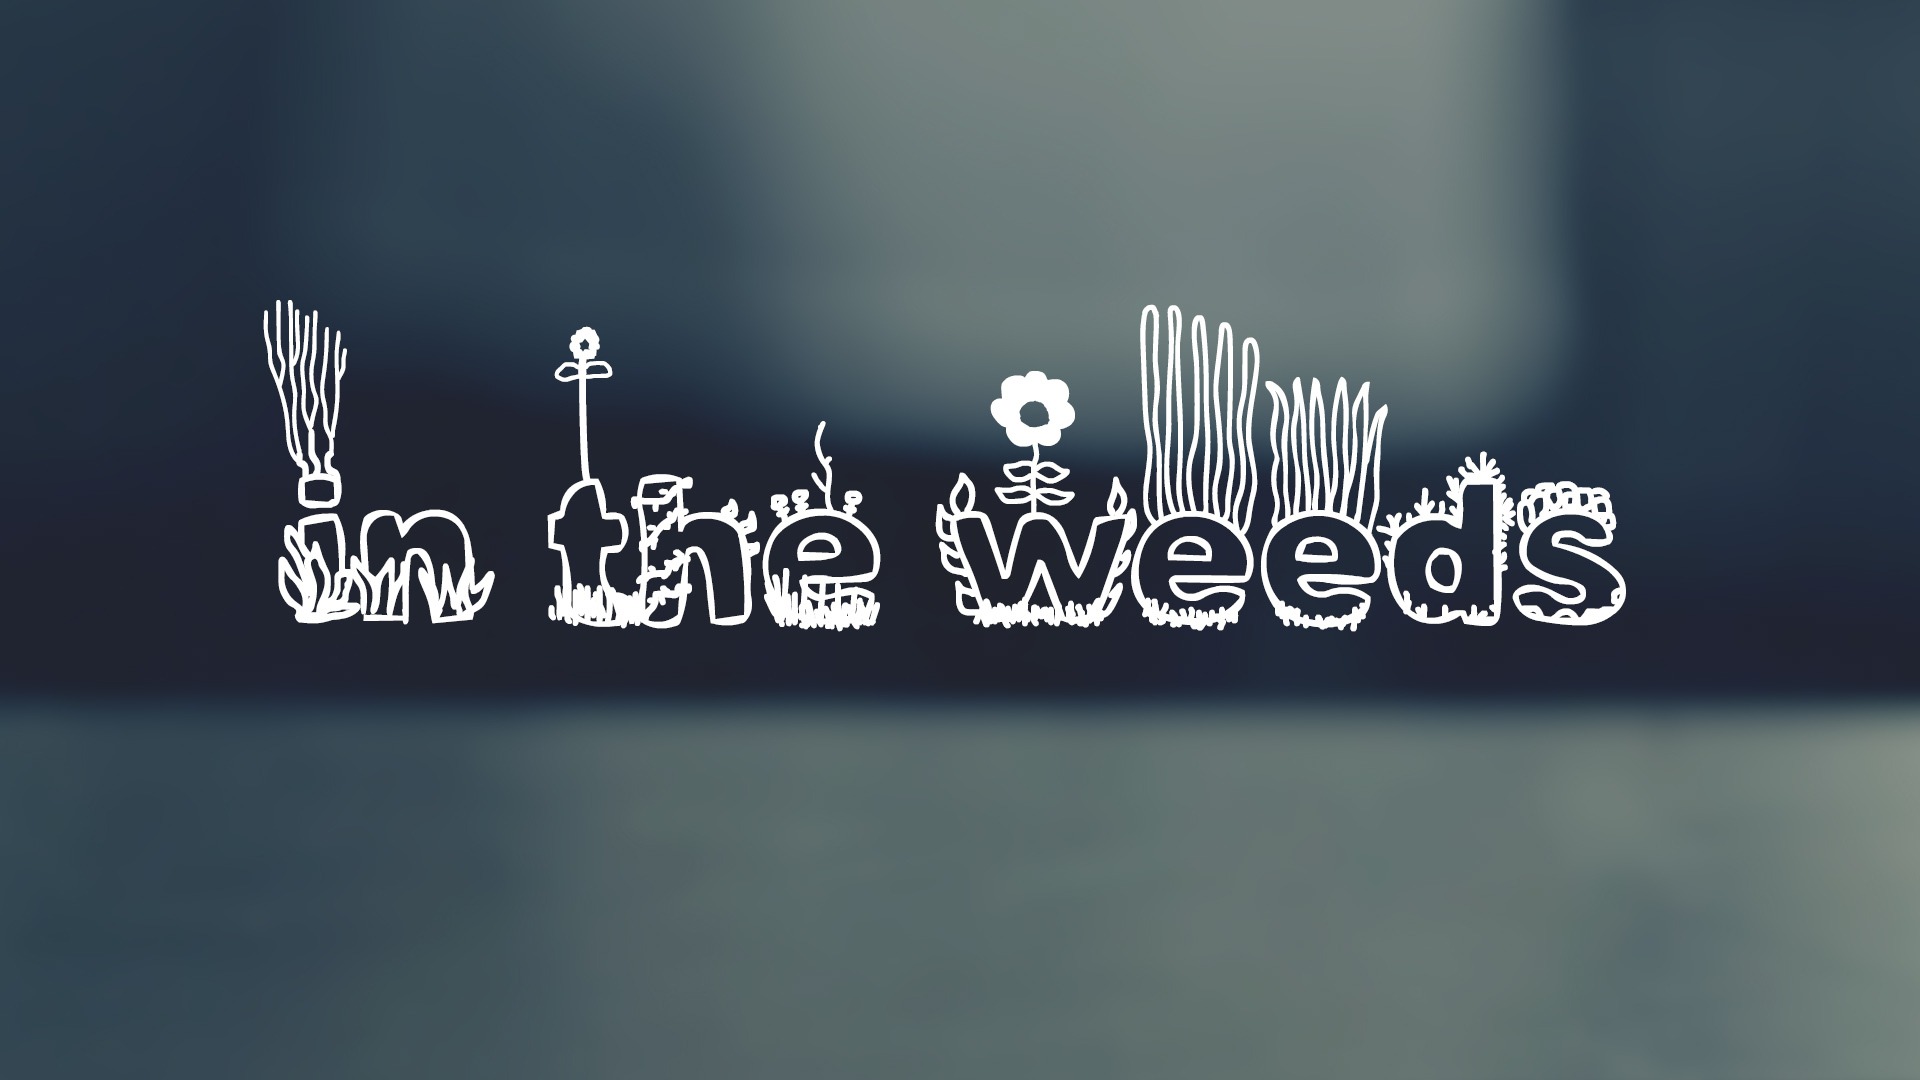 Chef Slang: In The Weeds